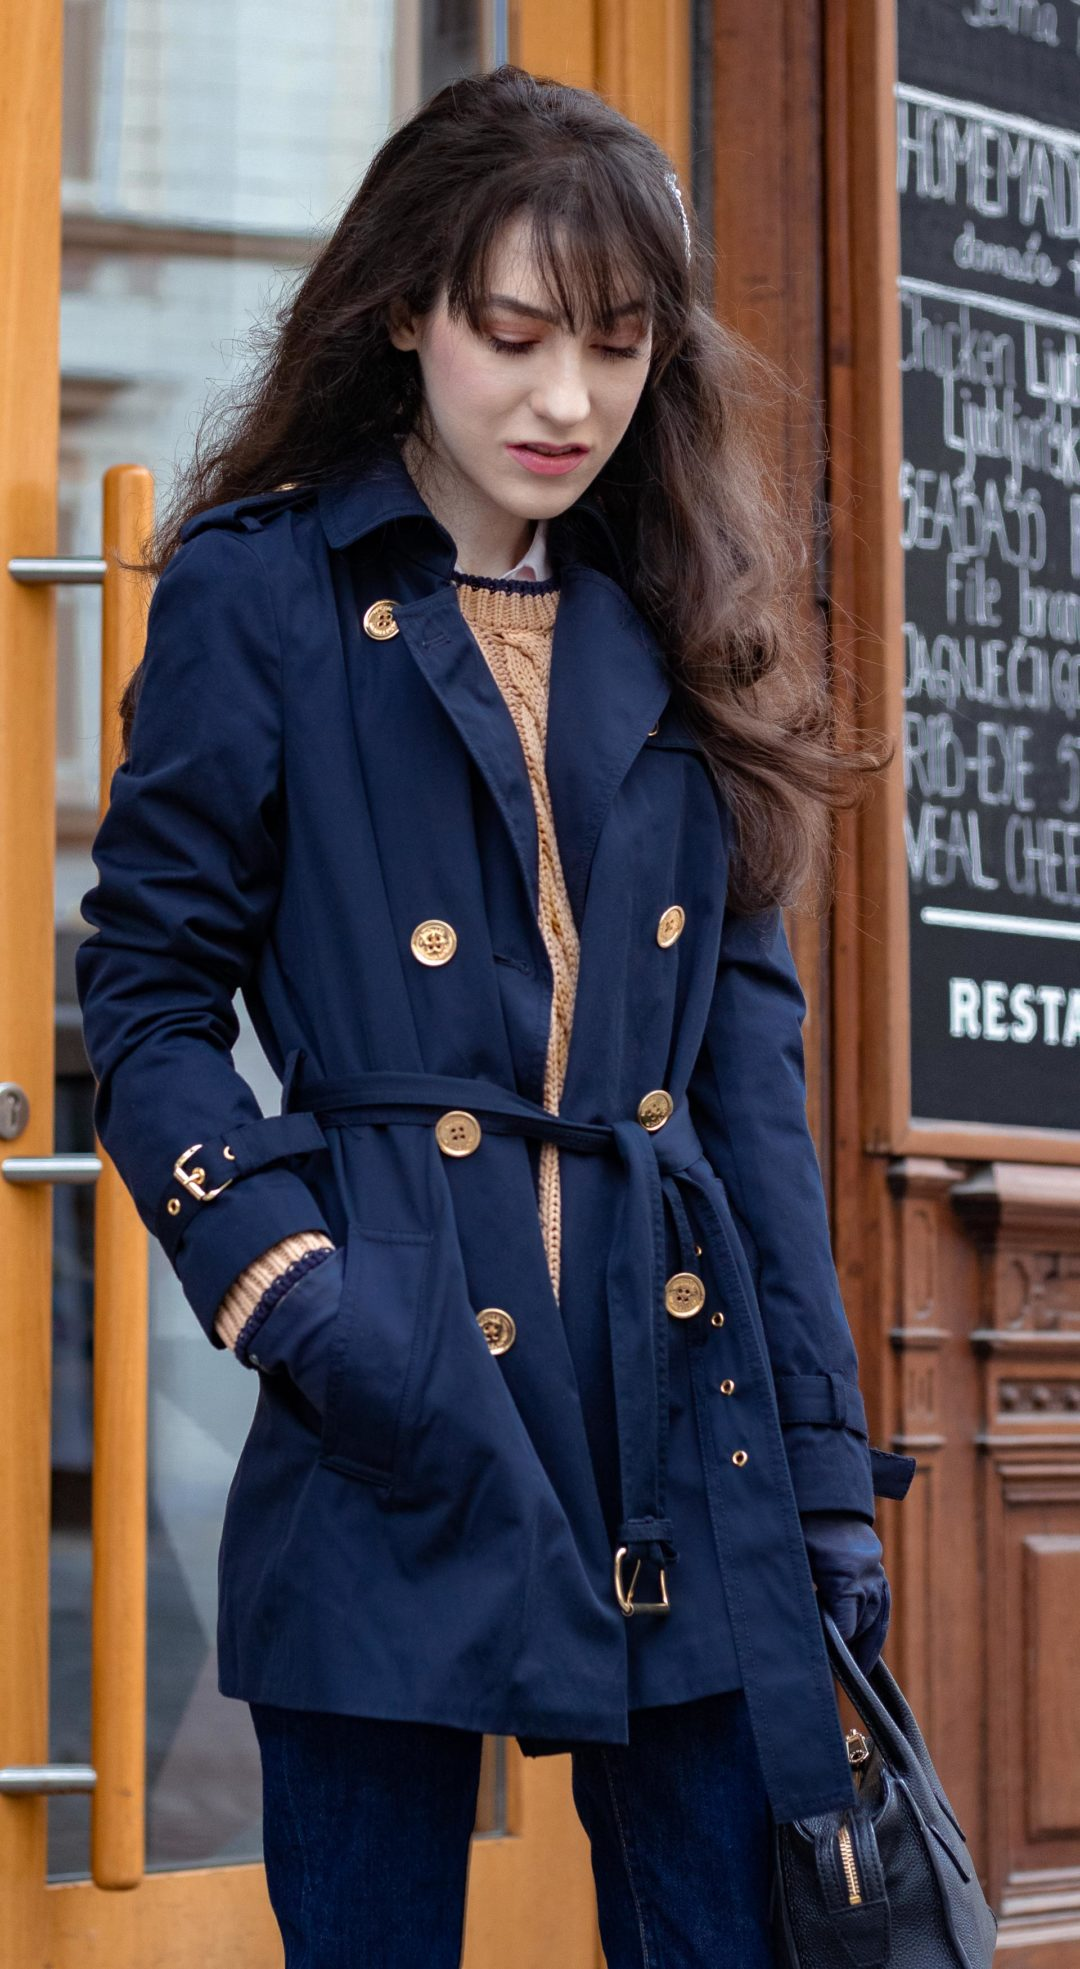 Must follow fashion blogger Veronika Lipar of Brunette from Wall Street dressed in Micael Kors blue trench coat Mango camel cable knit sweater A.P.C. denim jeans Forzieri small top handle black bag blue leather gloves fringe bangs on long hair pearl hairpin on the street